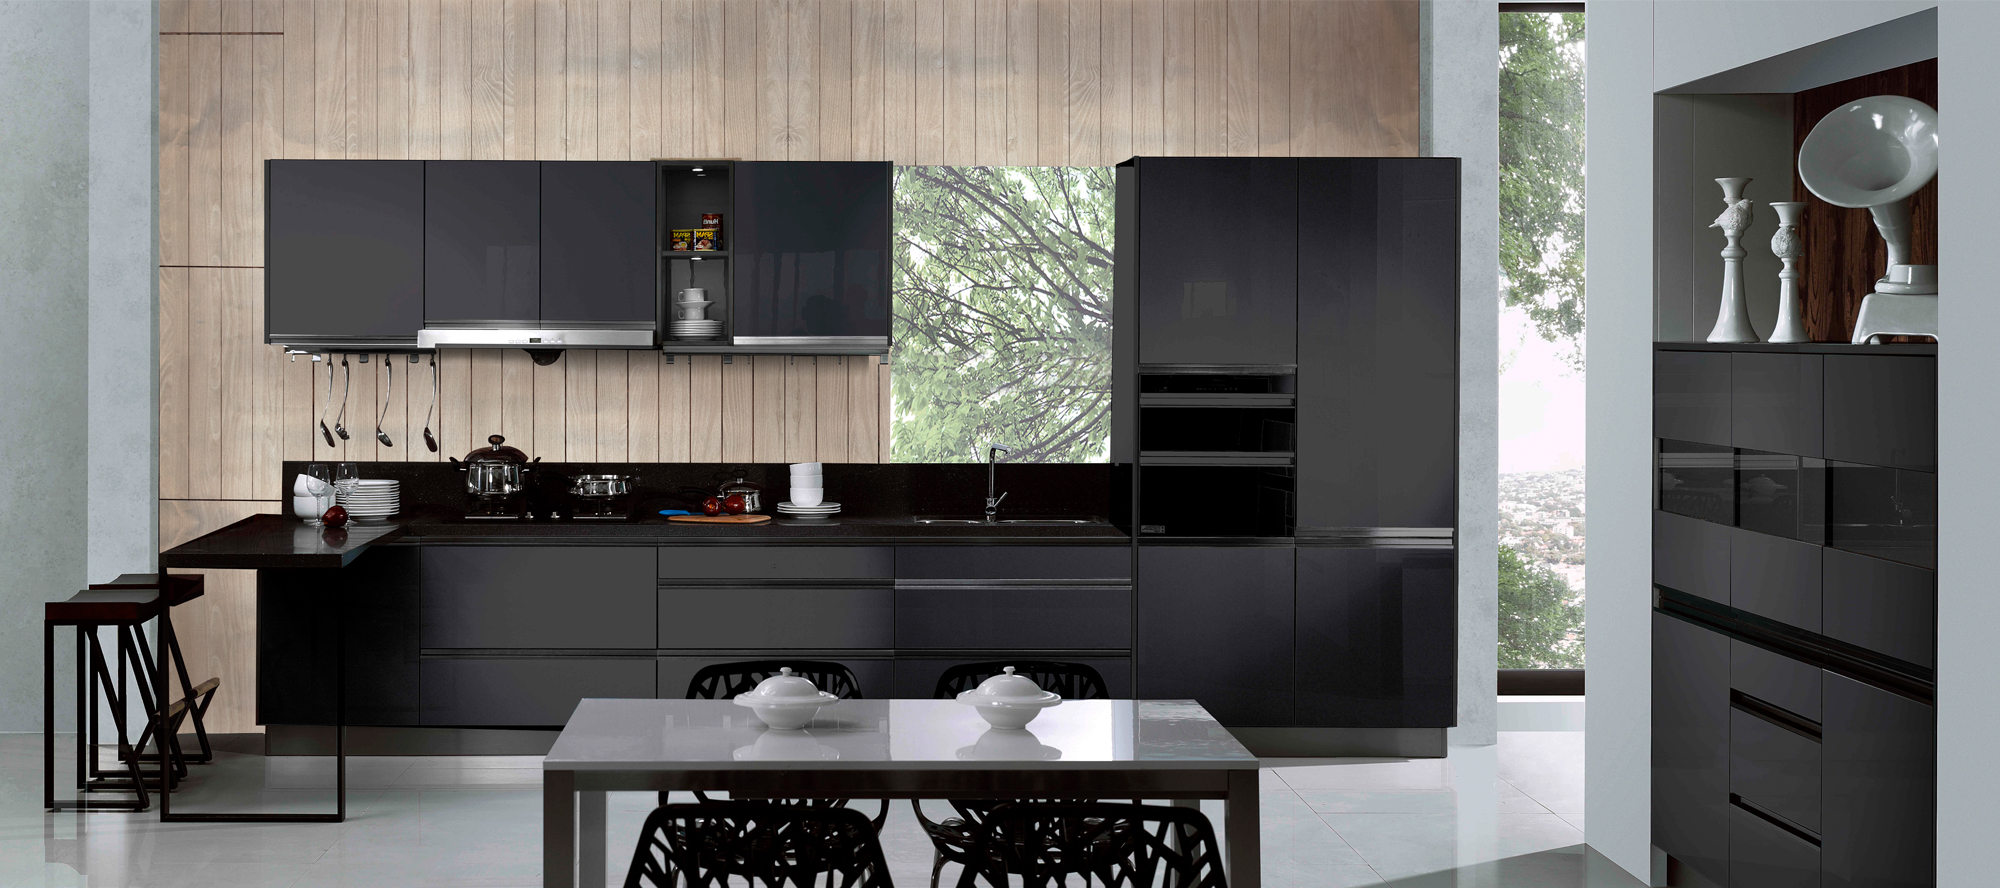 1MM international, North Supreme Laminates for Kitchen-Sundek International